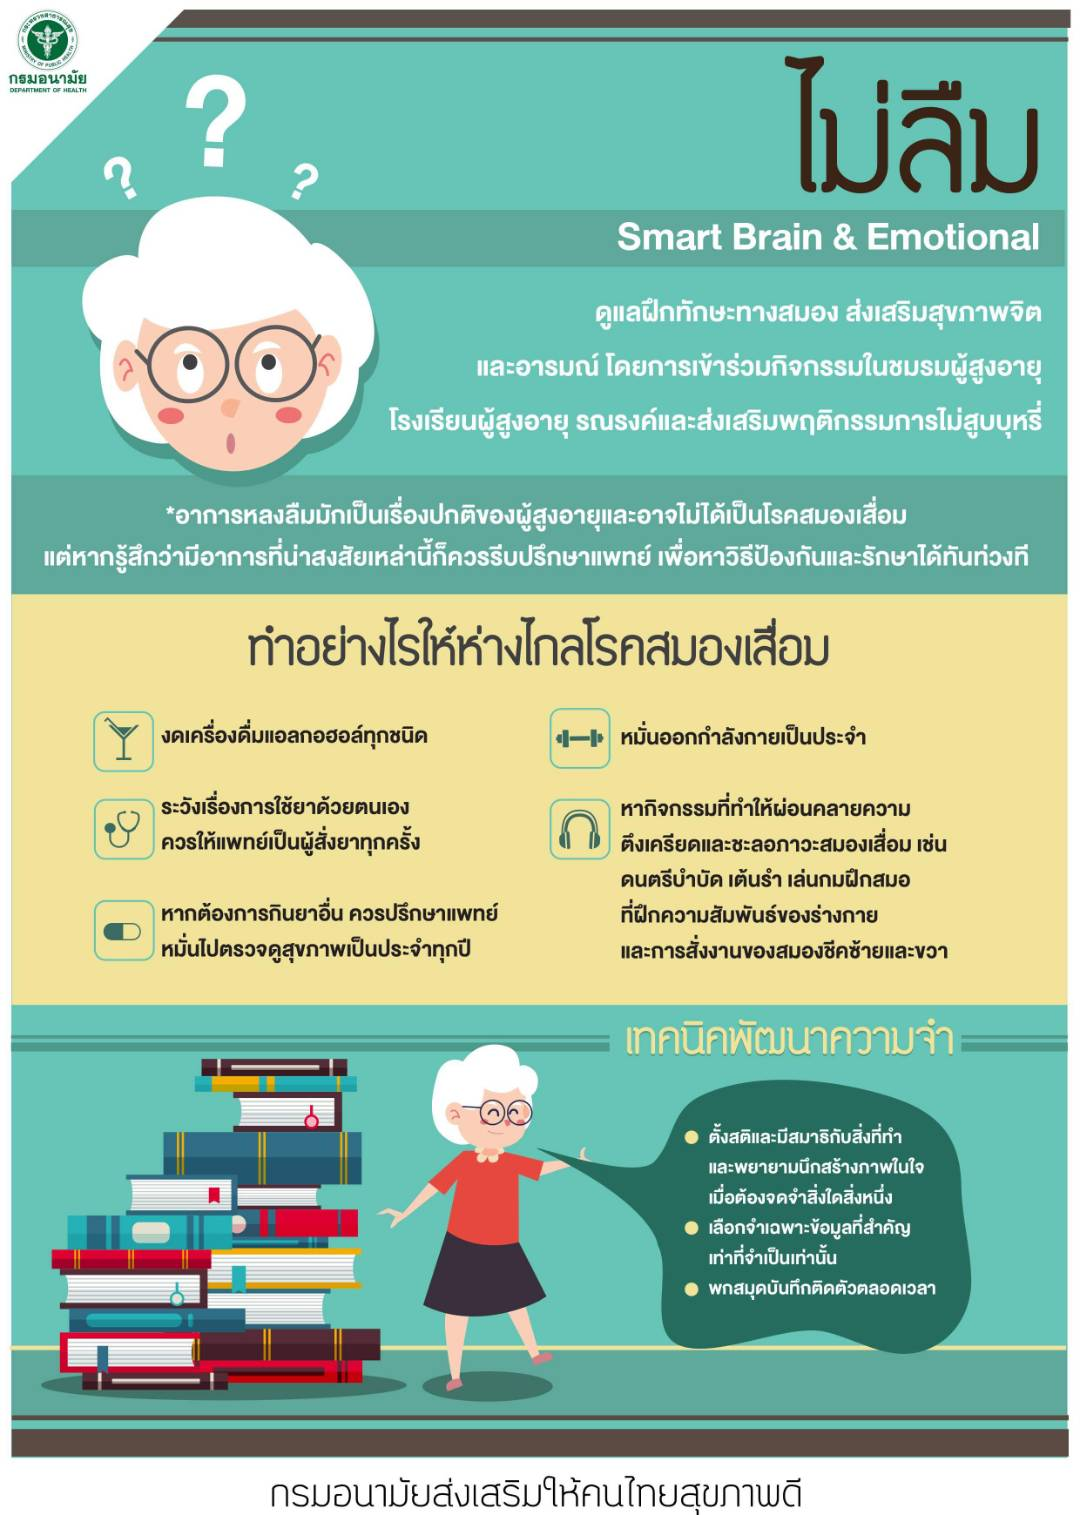 ไม่ลืม Smart Brain & Emotional